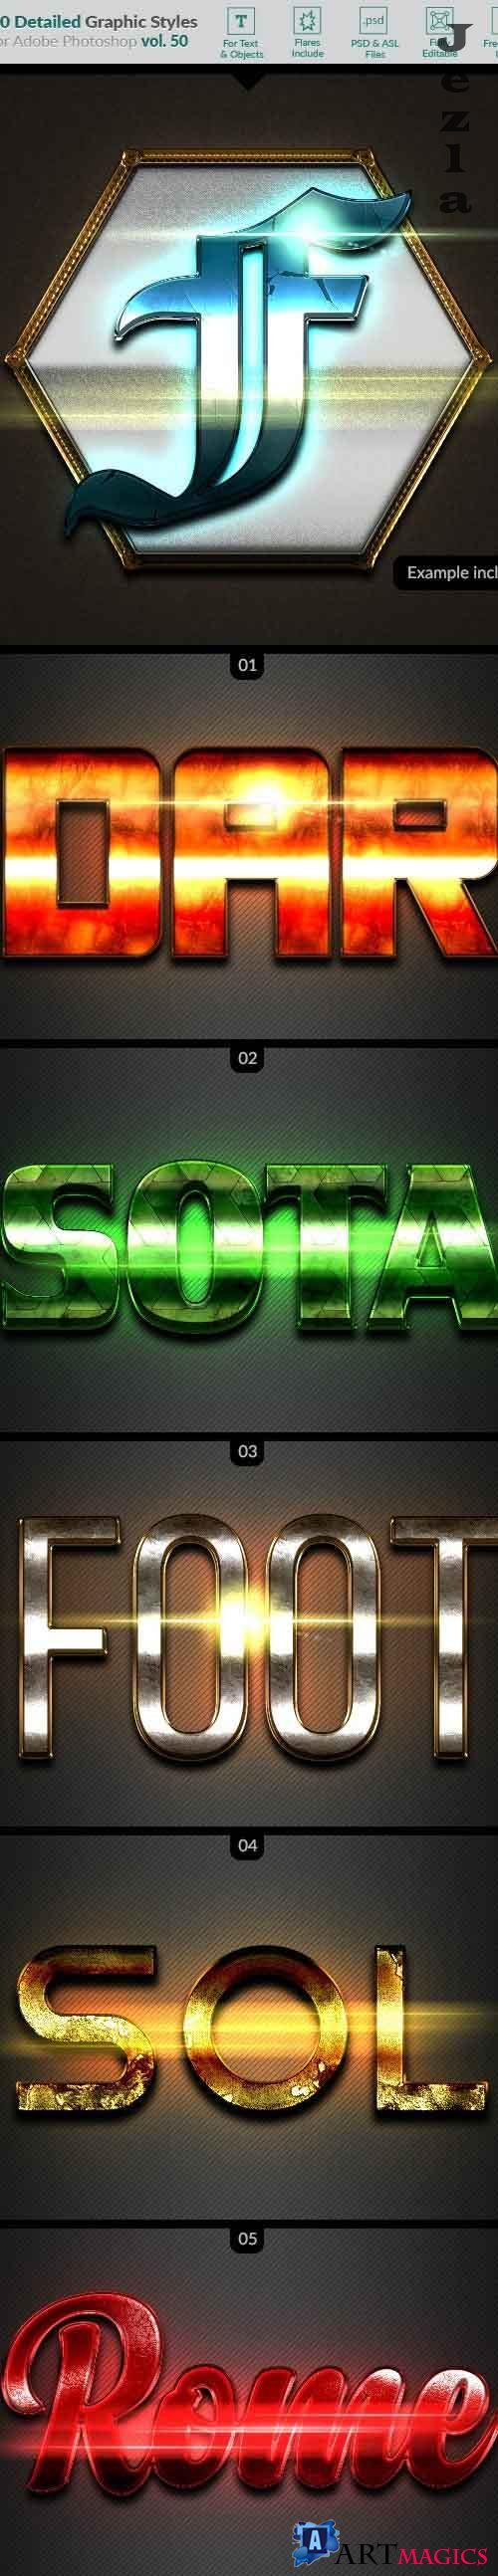 10 Text Effects Vol. 50 26909356